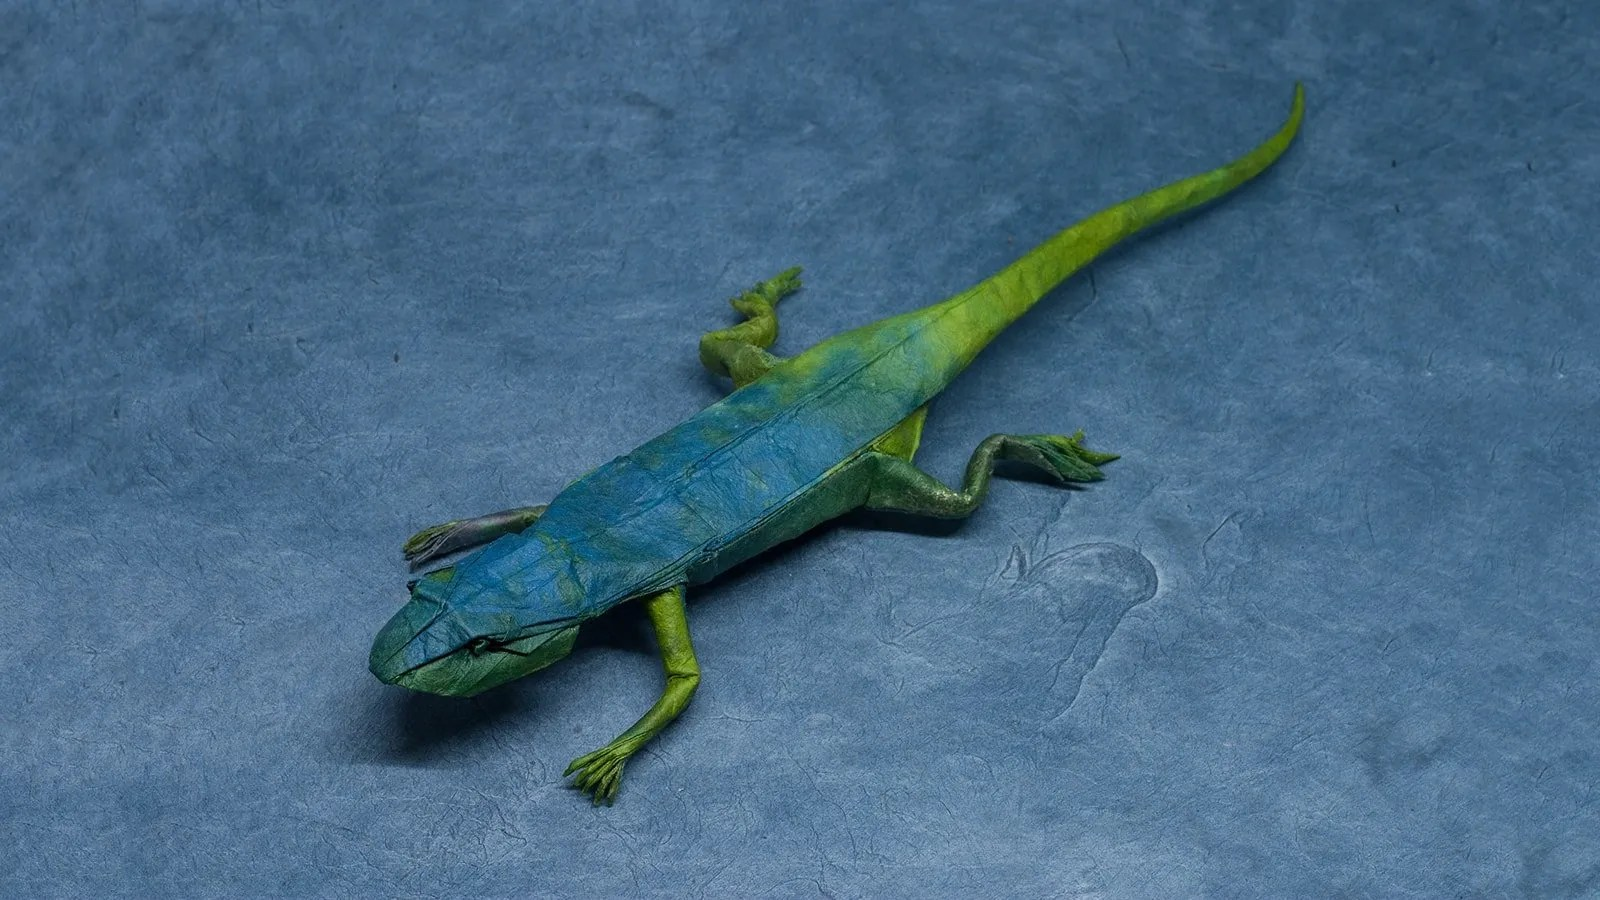 Hd Exclusive How To Make A Paper Lizard Easy